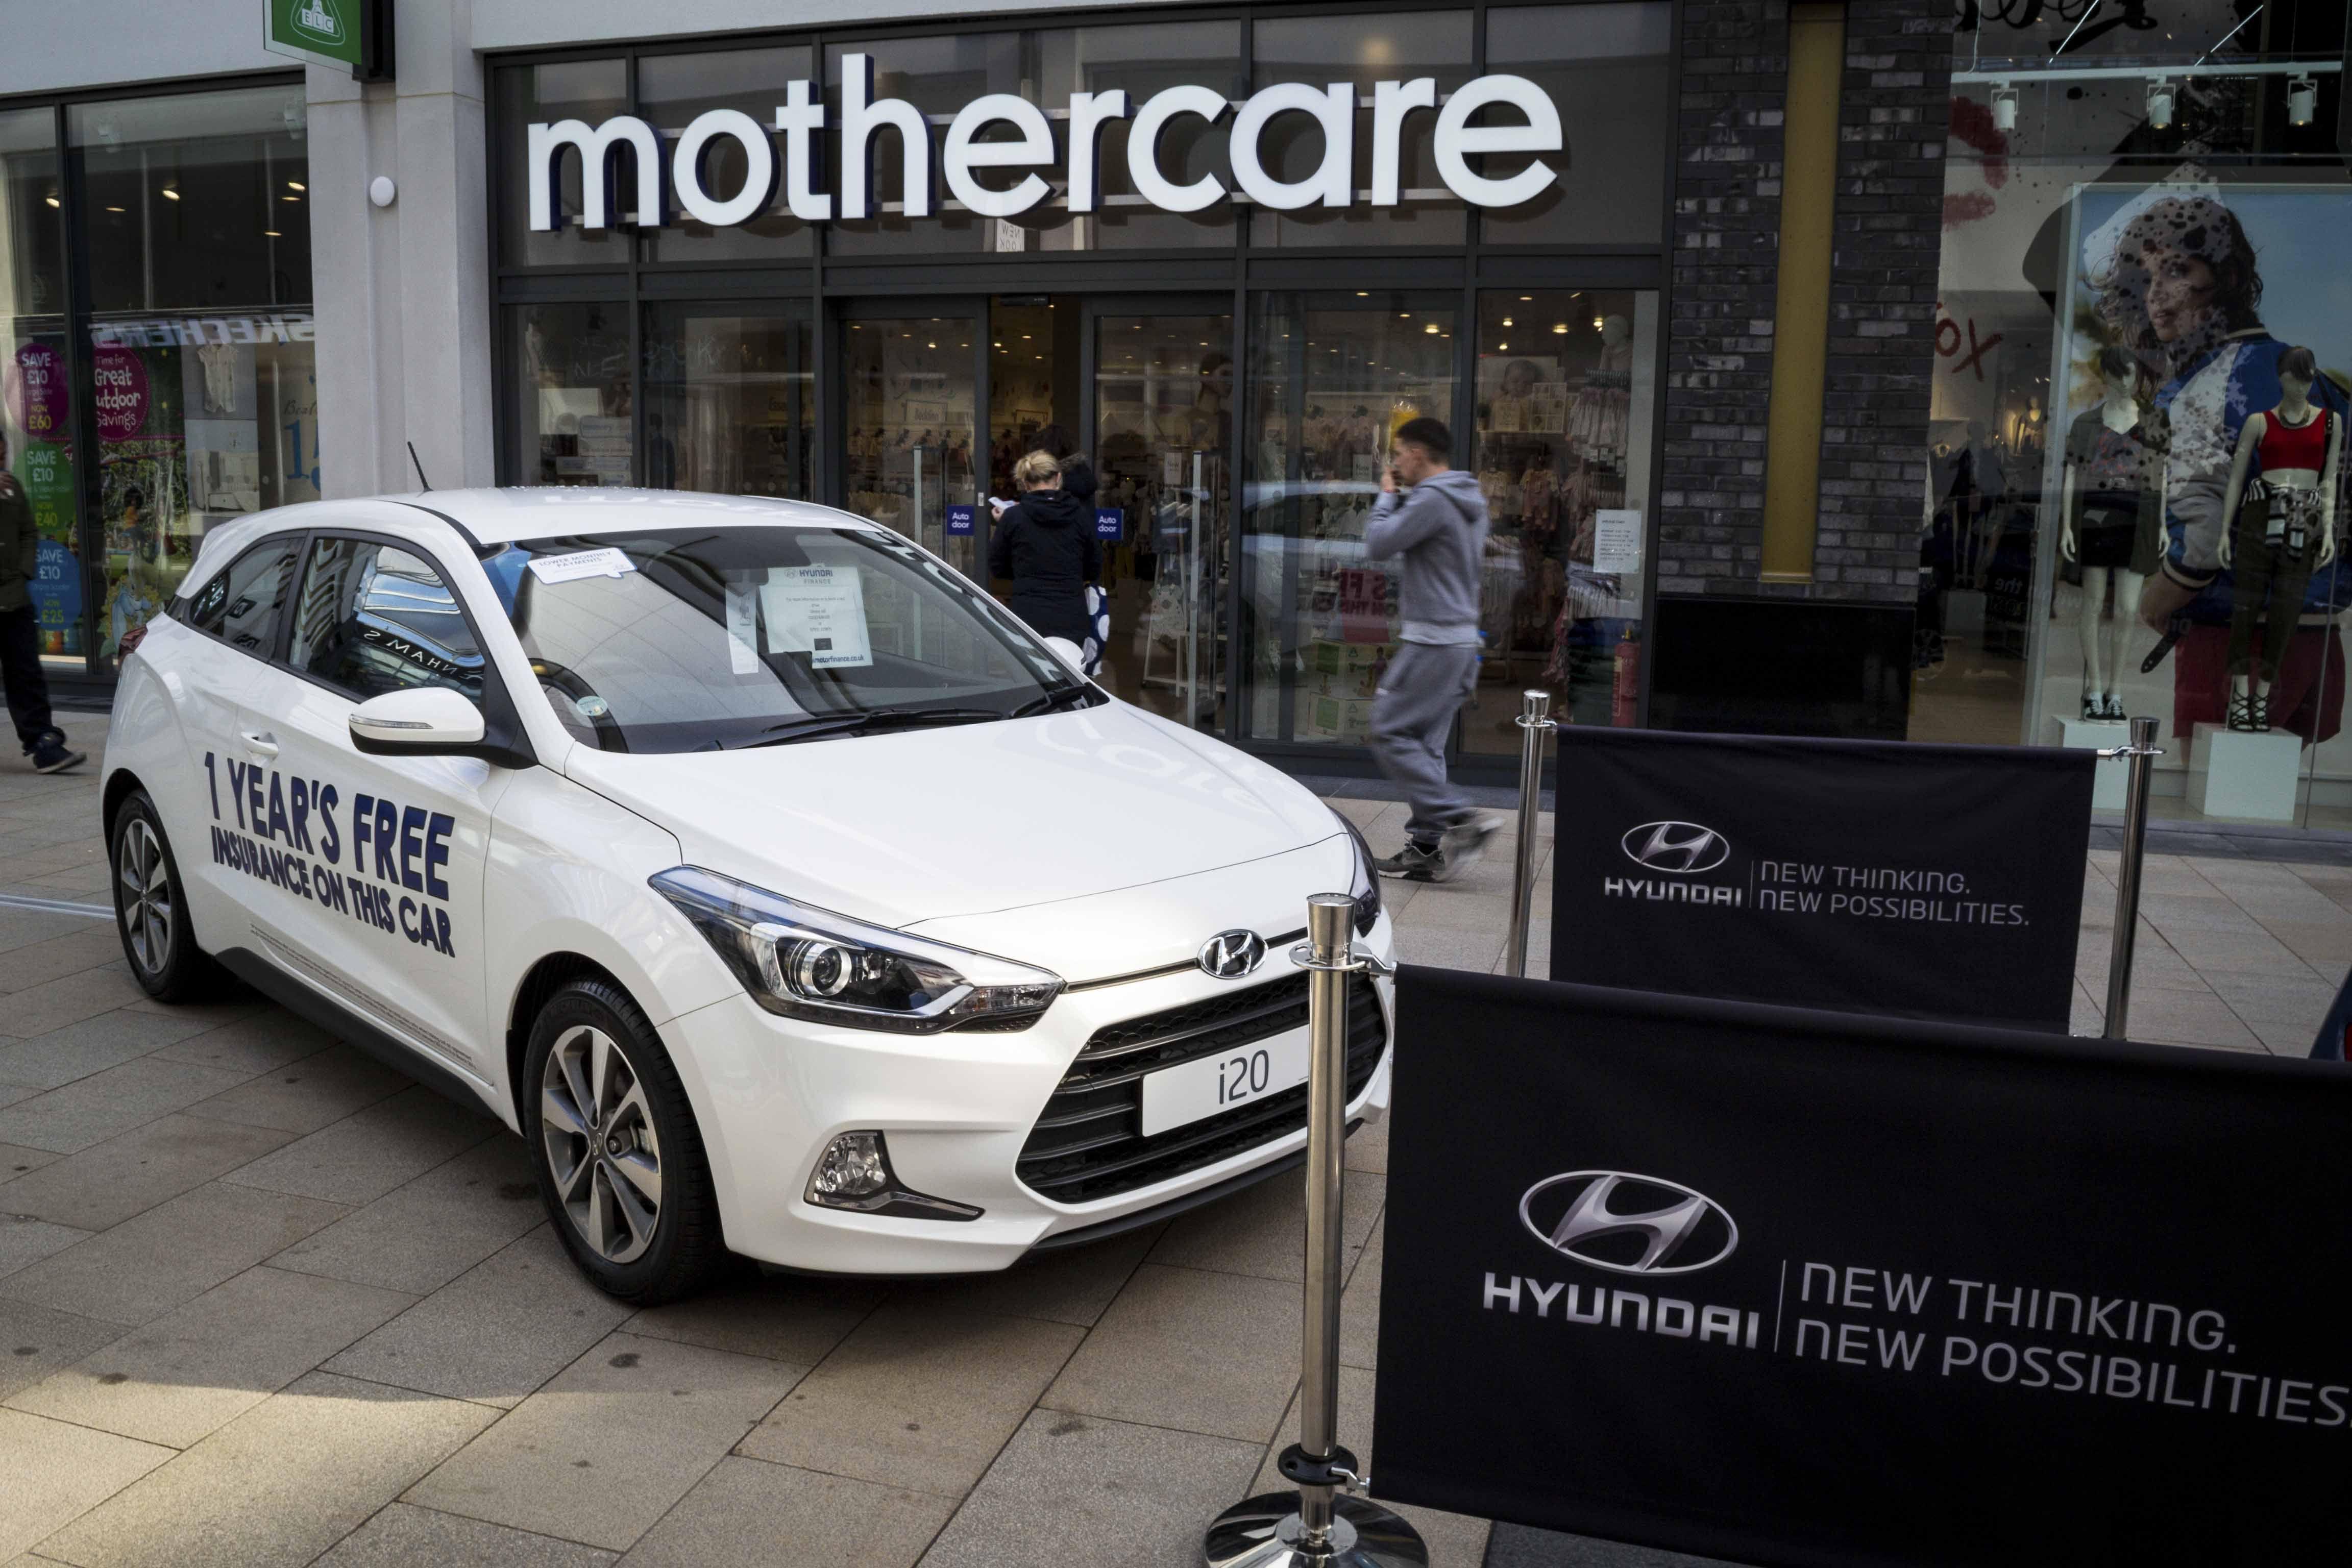 All this week our Newport branch has the Hyundai i20 on